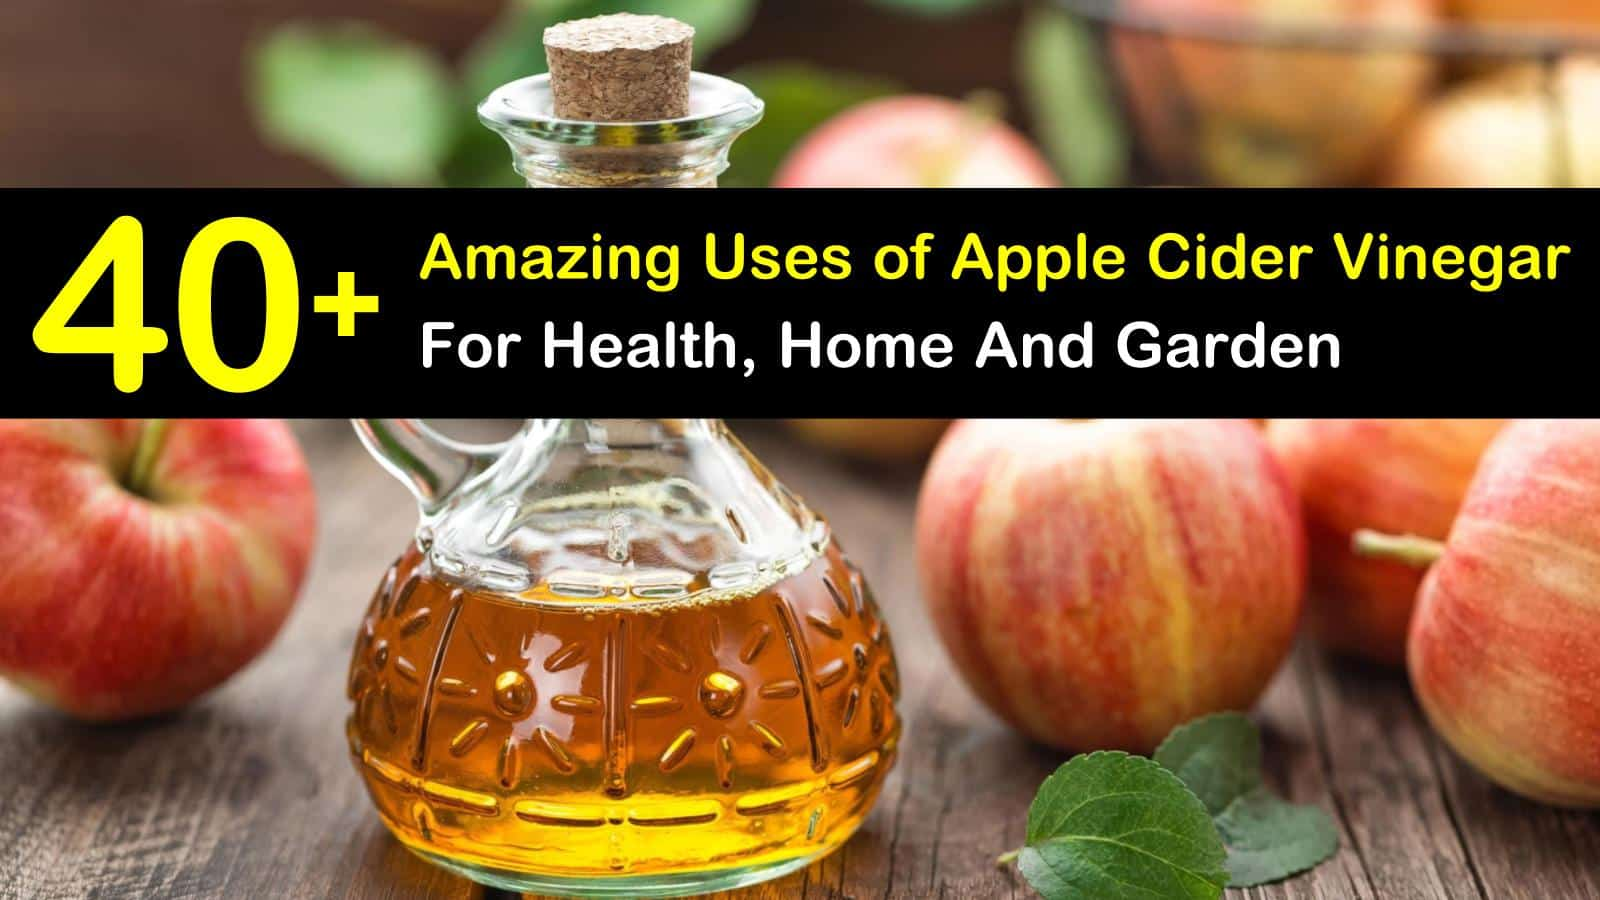 40+ Amazing Uses of Apple Cider Vinegar For Health, Home and